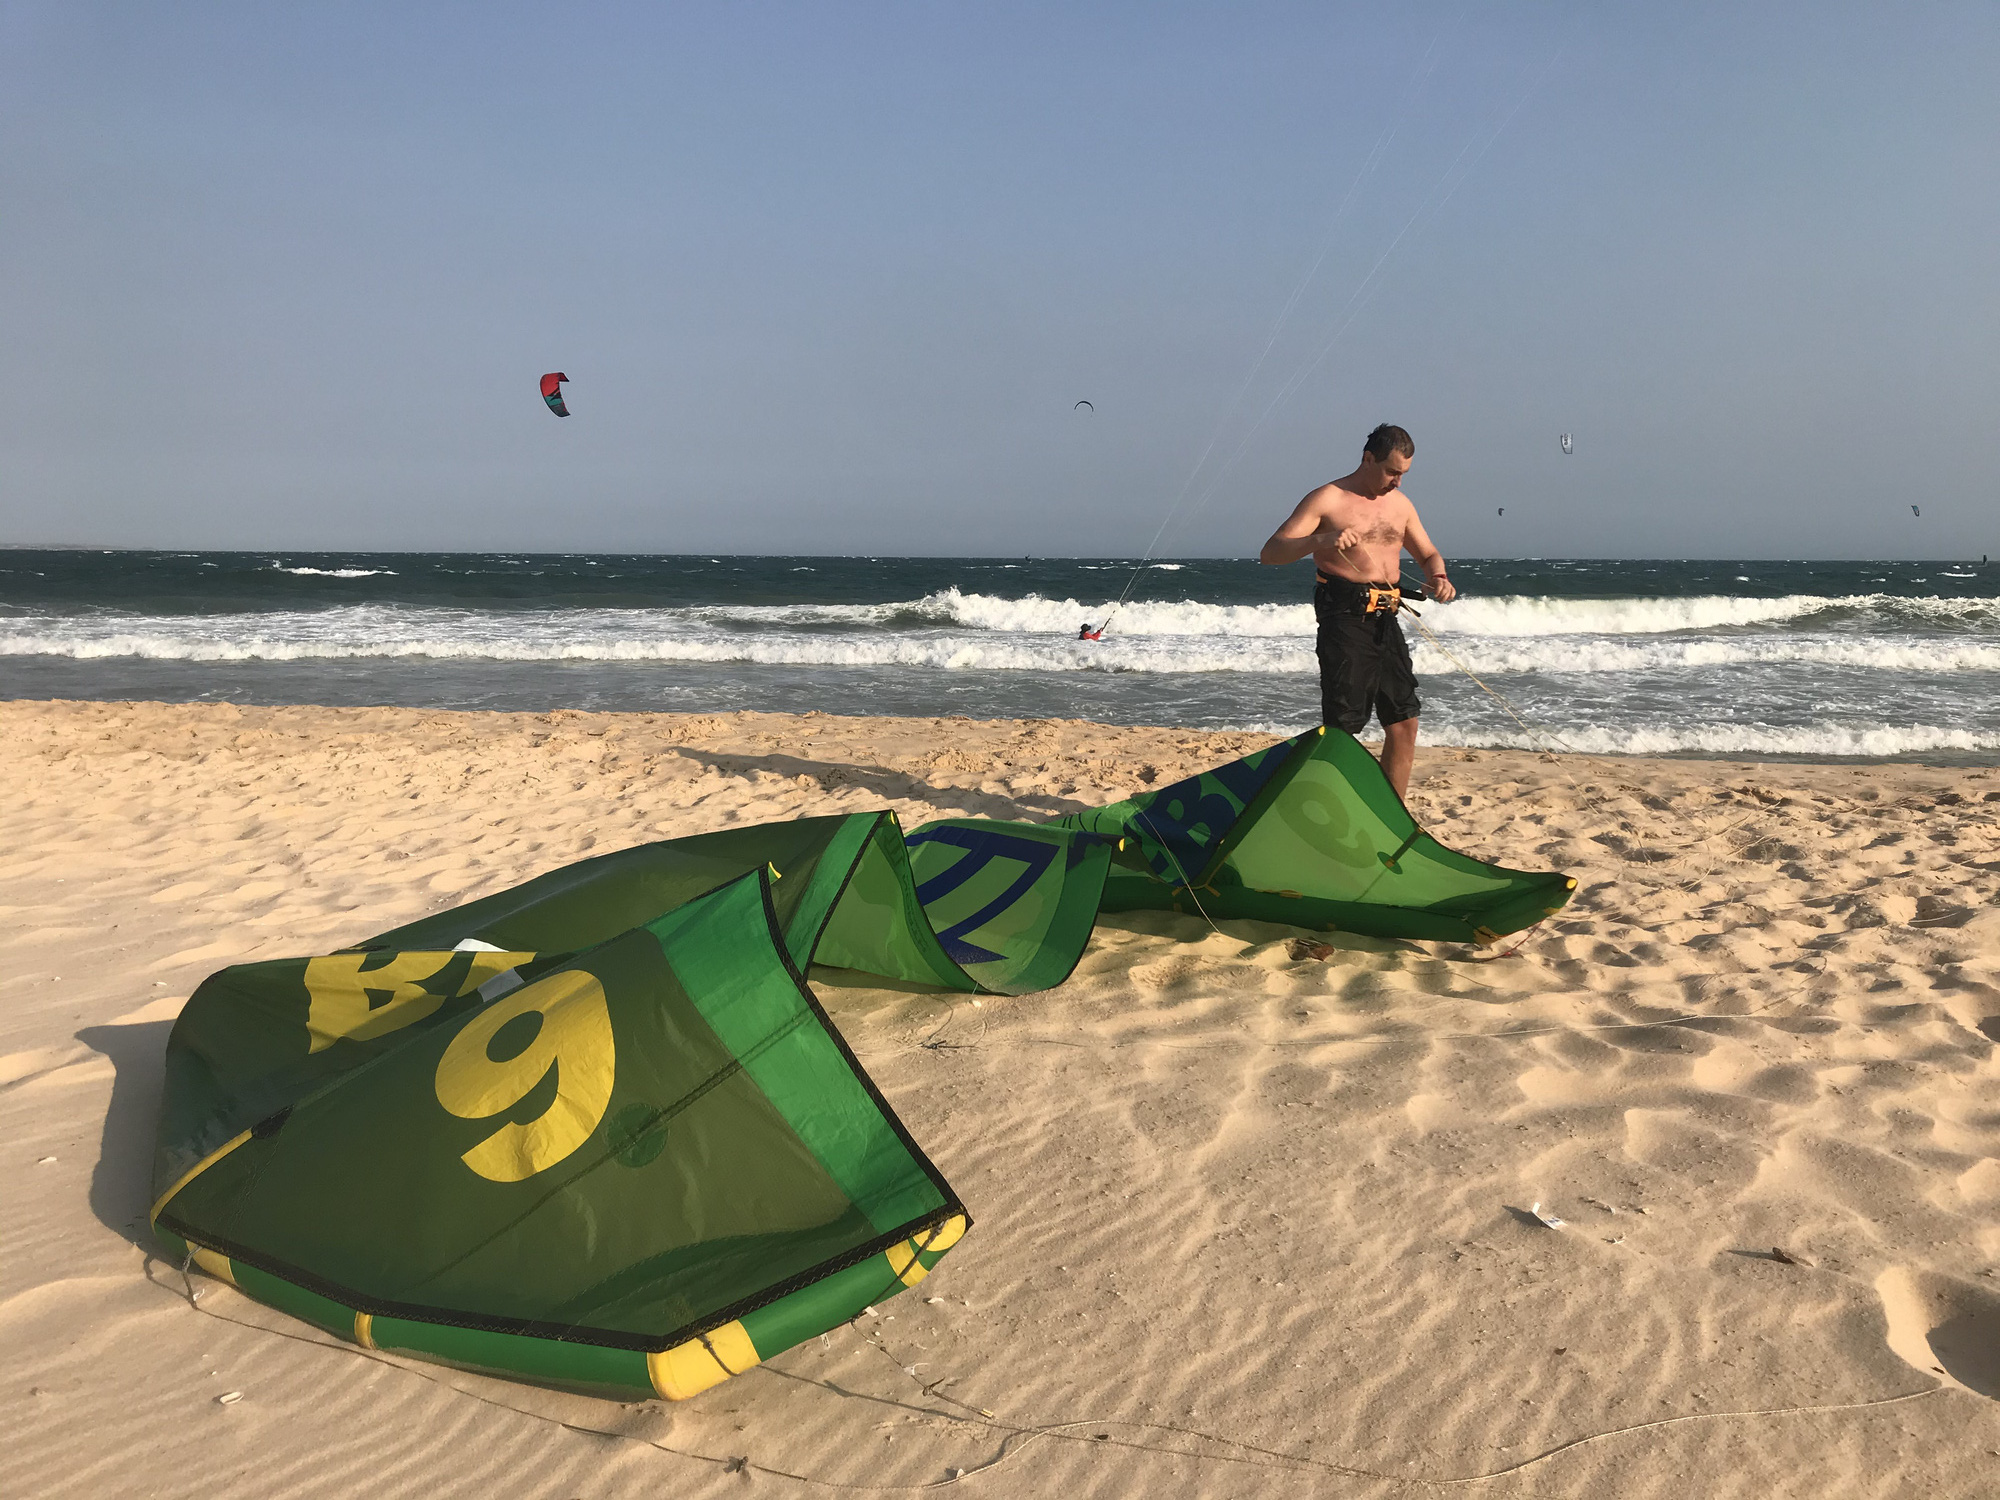 A Russian tourist gets ready for kite surfing at Mui Ne Beach in Binh Thuan Province, Vietnam, March 15, 2020. Photo: Son Lam / Tuoi Tre